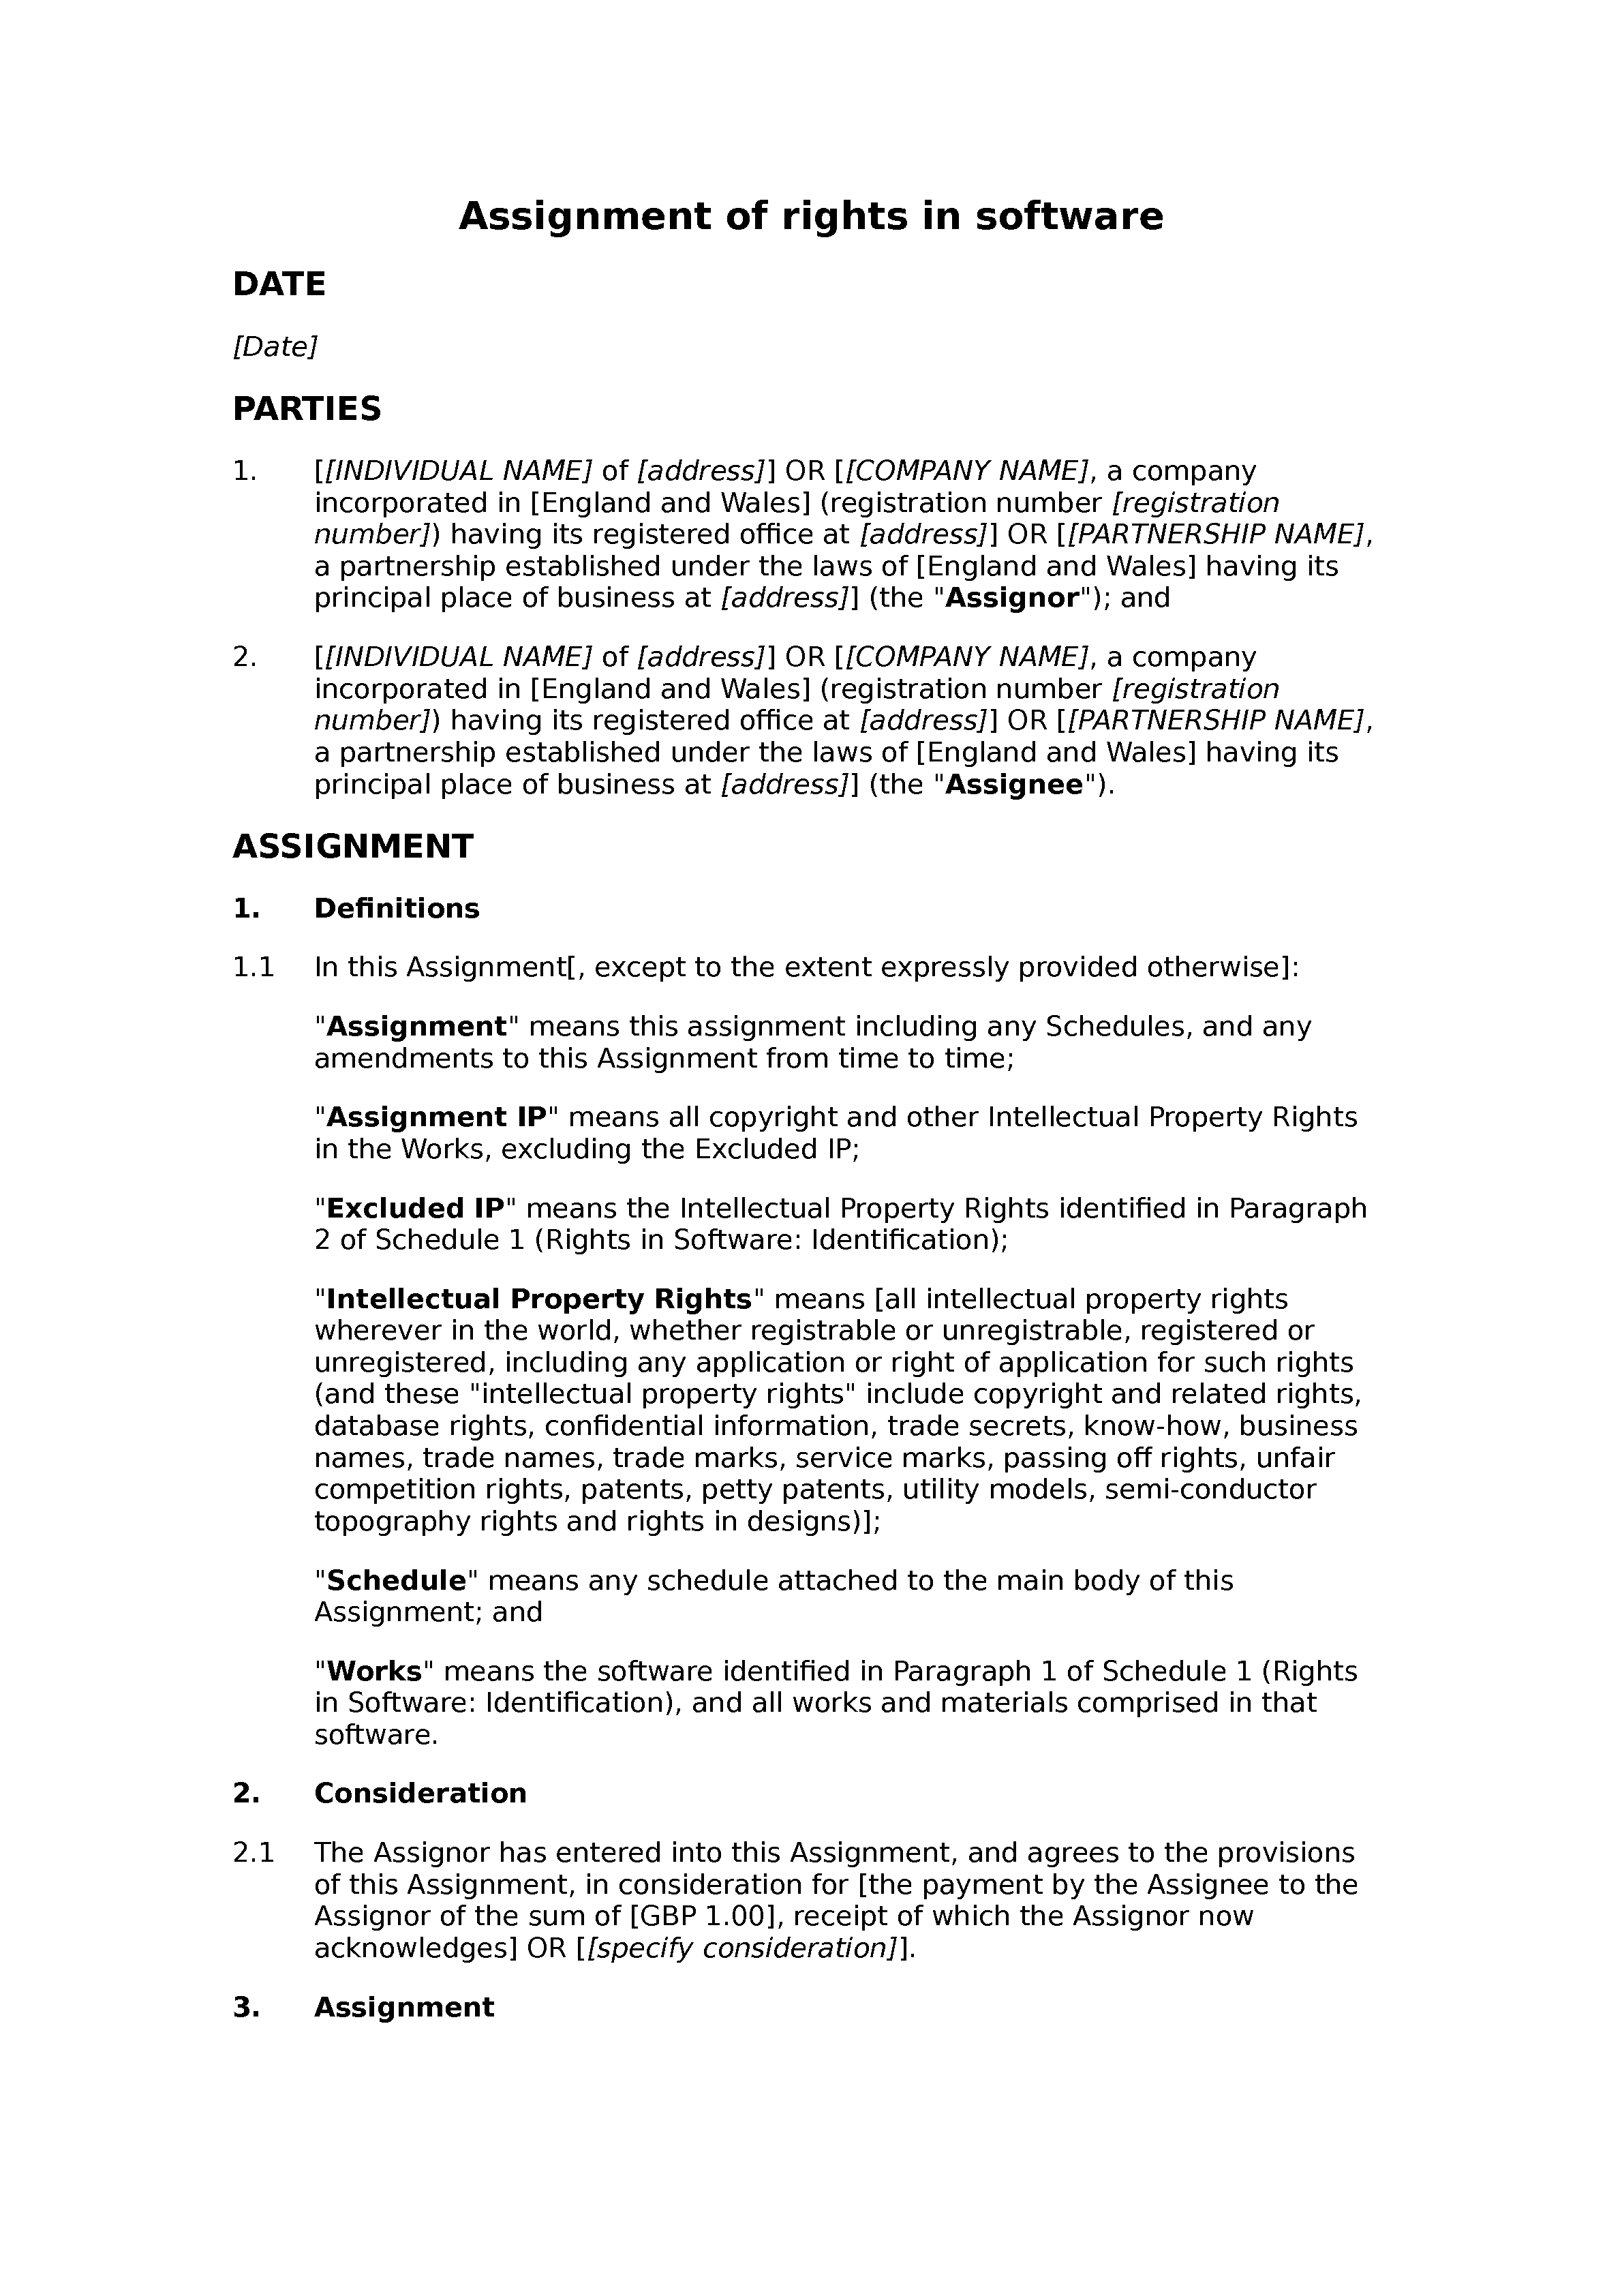 Assignment of rights in software document preview